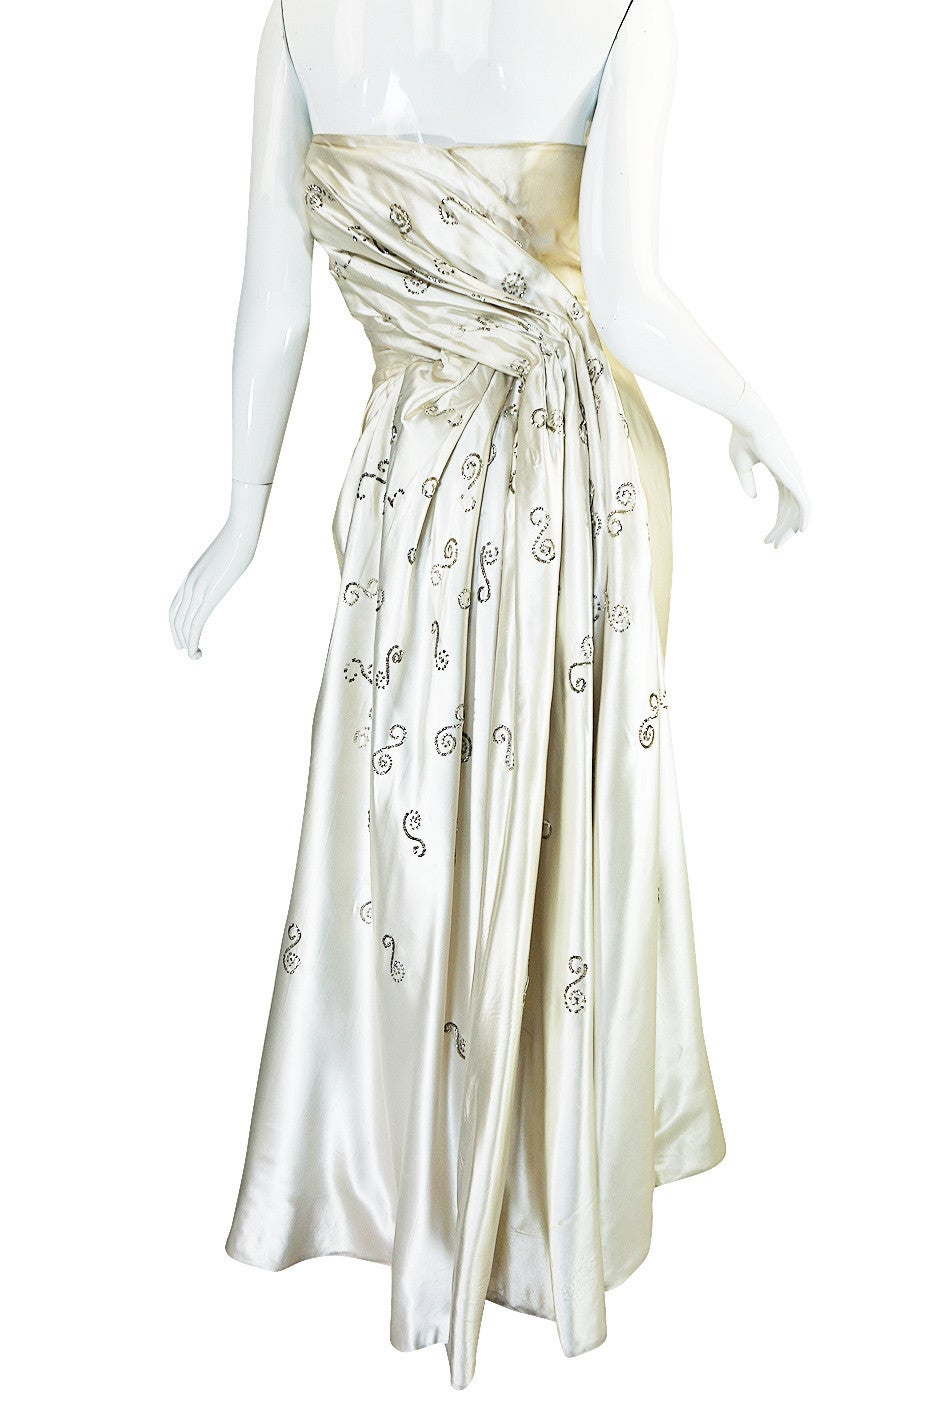 c1959 Maggy Rouf Haute Couture Champagne Silk Gown For Sale 1